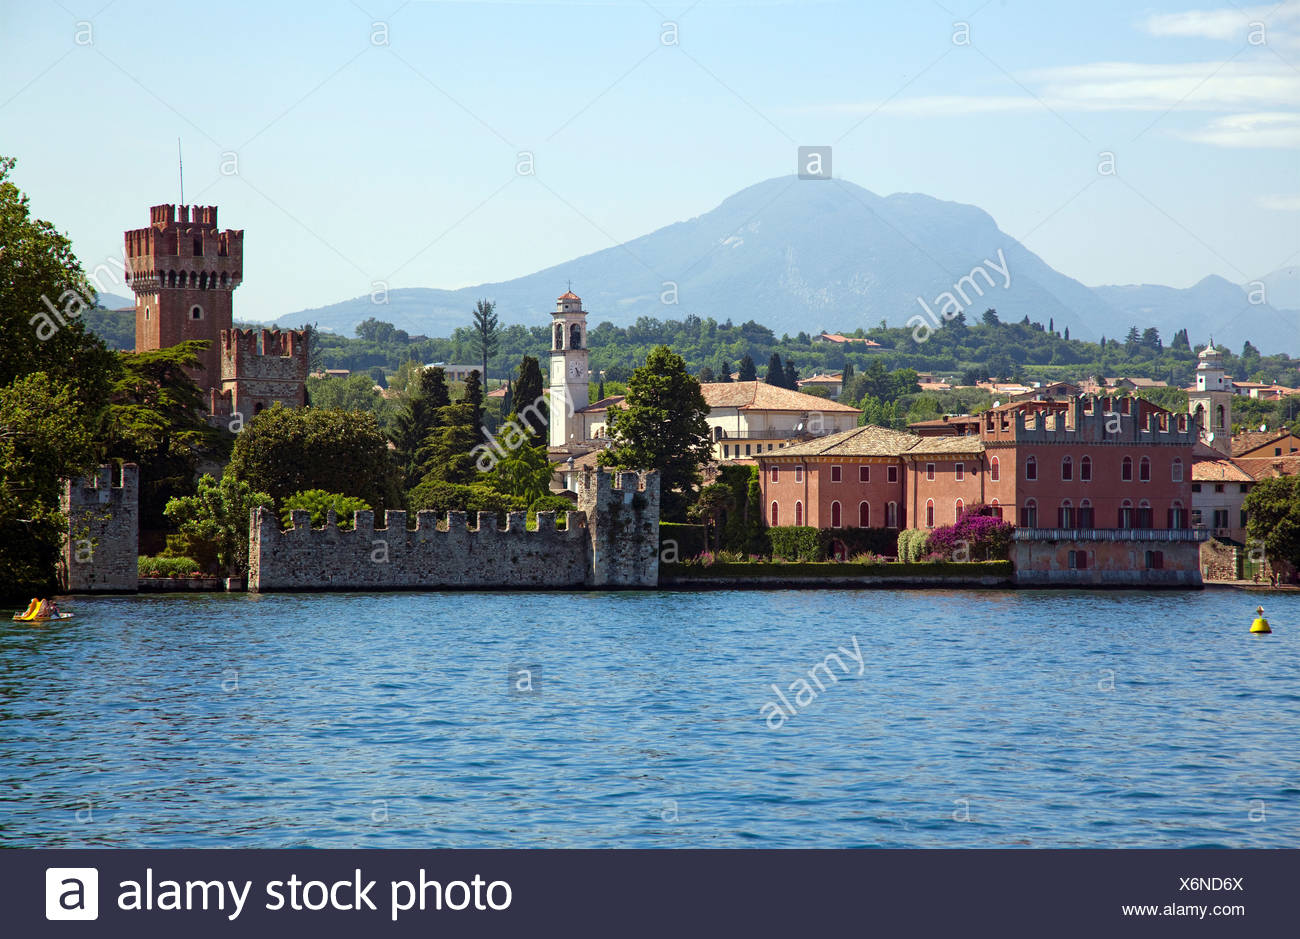 with Scaliger castle, 9th century, one of the best preserved fortifications on Lake Garda, , Verona province, Veneto, Italy - Stock Image